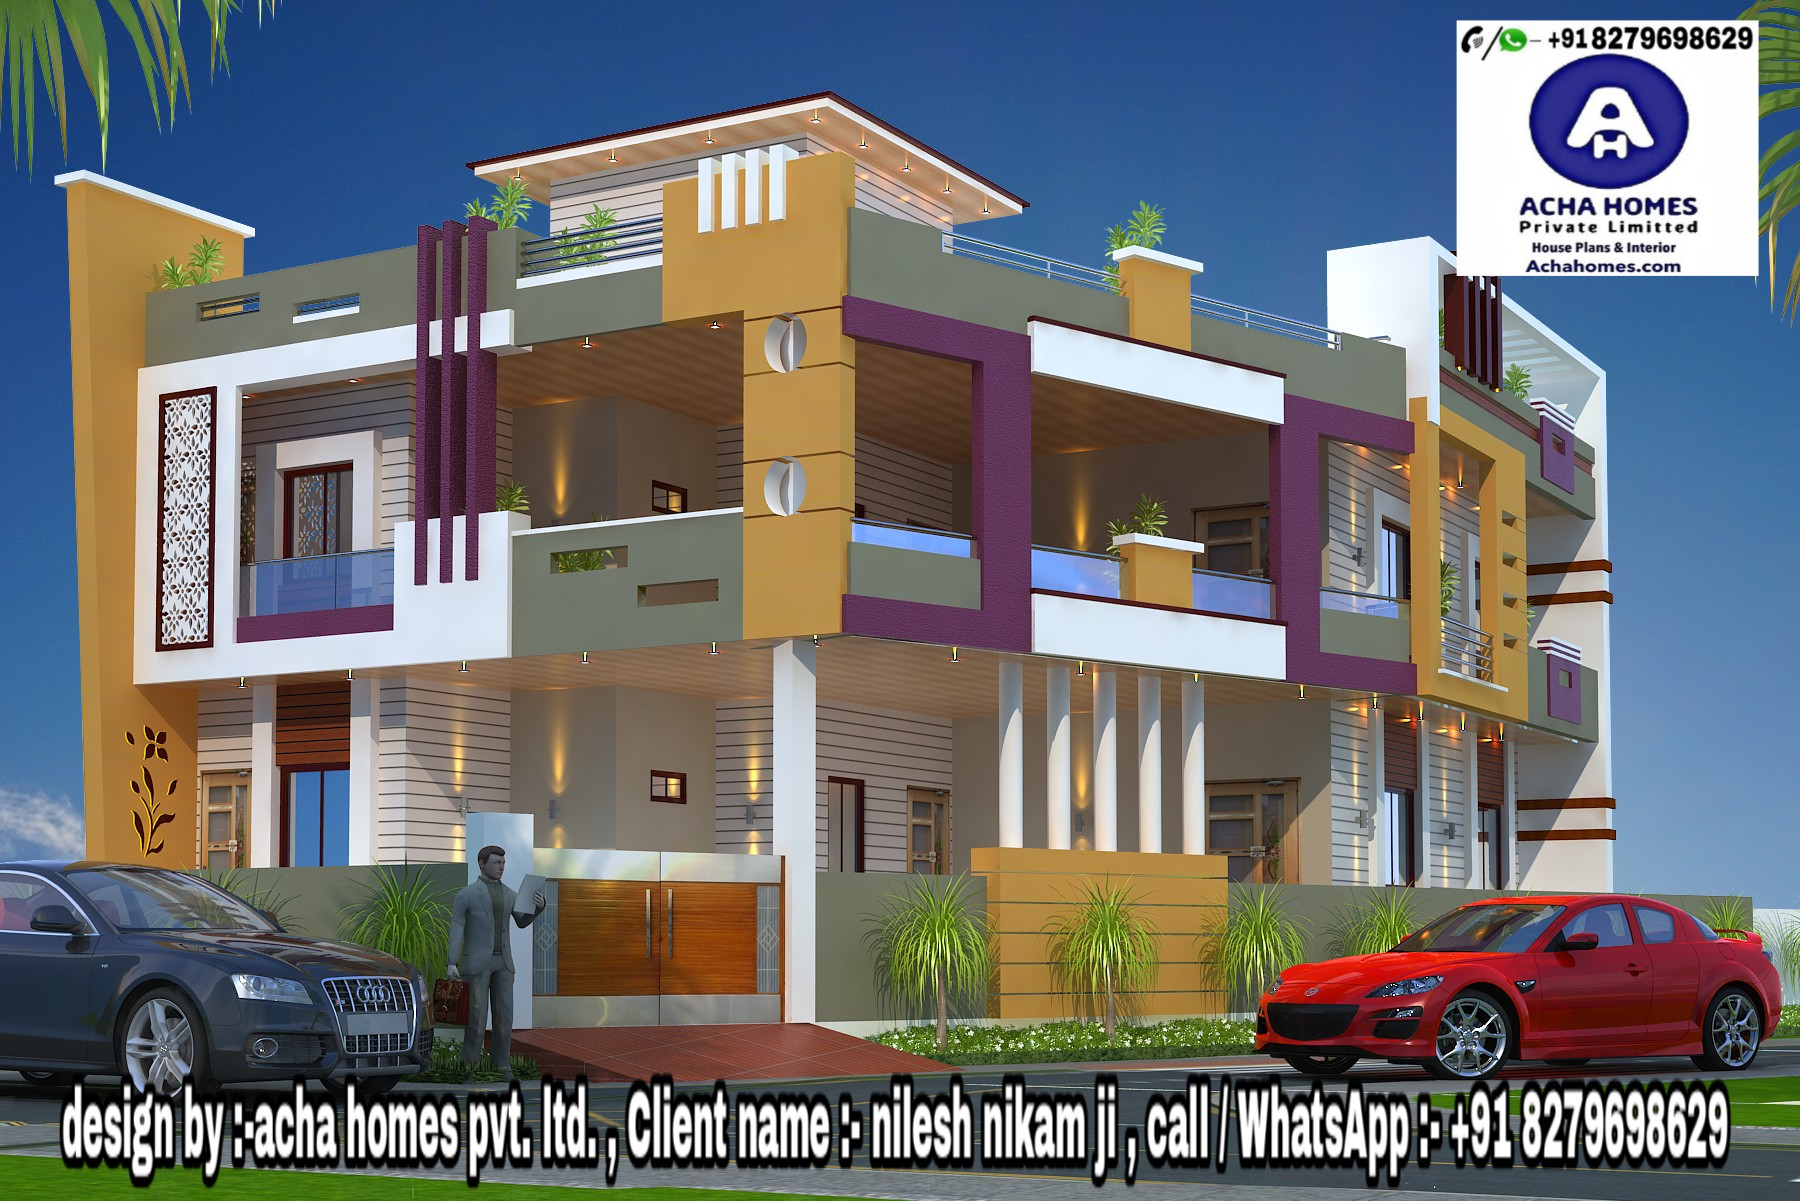 4 BHK INDIAN HOME DESIGN